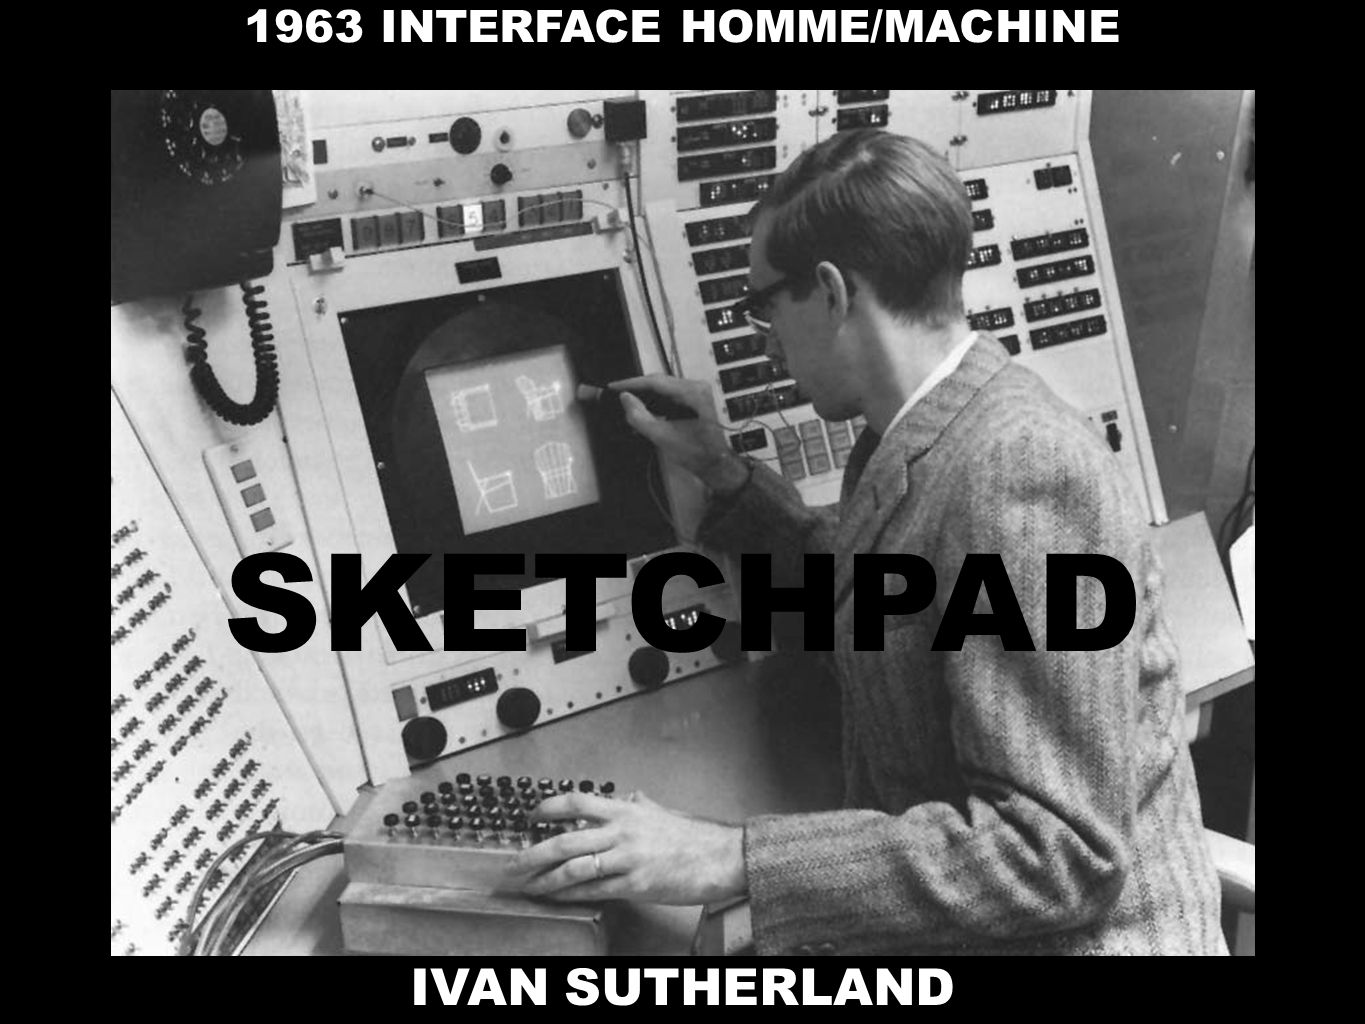 IVAN SUTHERLAND 1963 INTERFACE HOMME/MACHINE SKETCHPAD